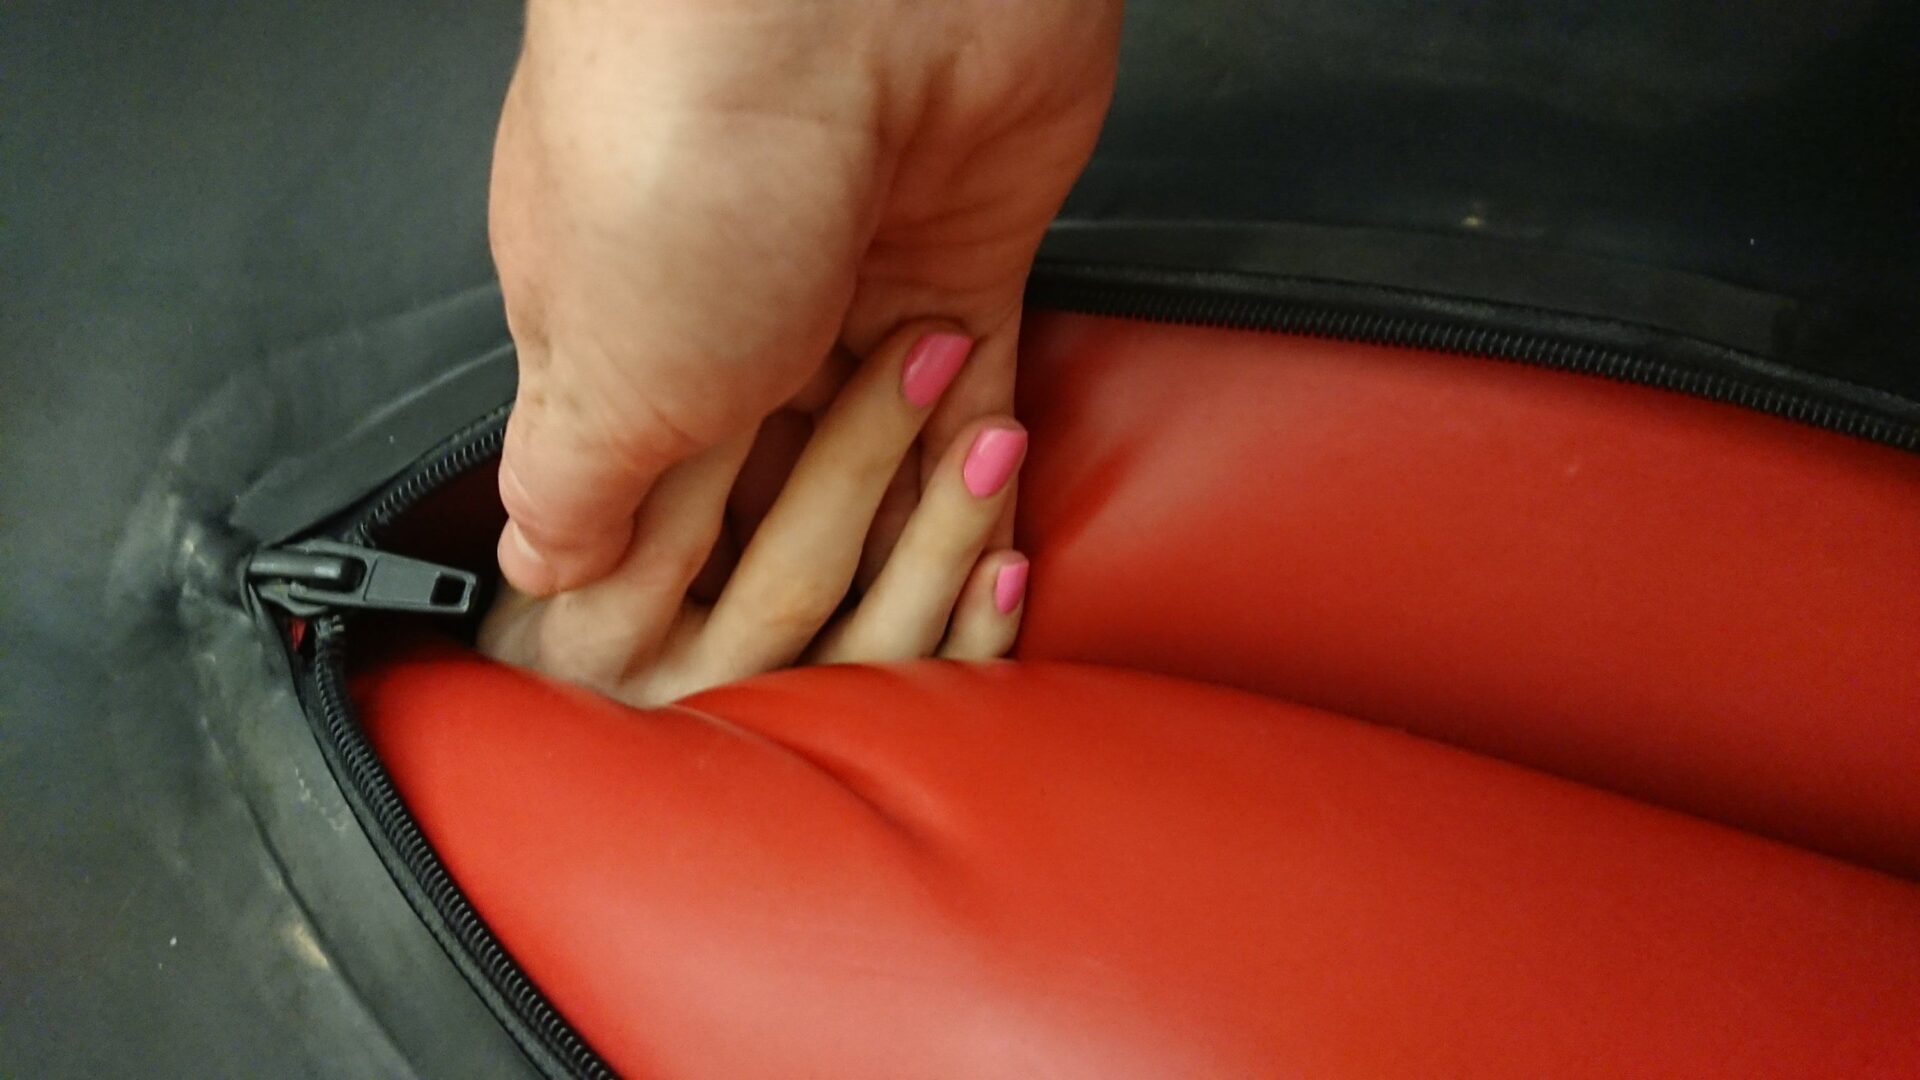 One hand with manicured pink nails reaching out from inside an inflated latex body bag., holding hands with a second hand reaching down.